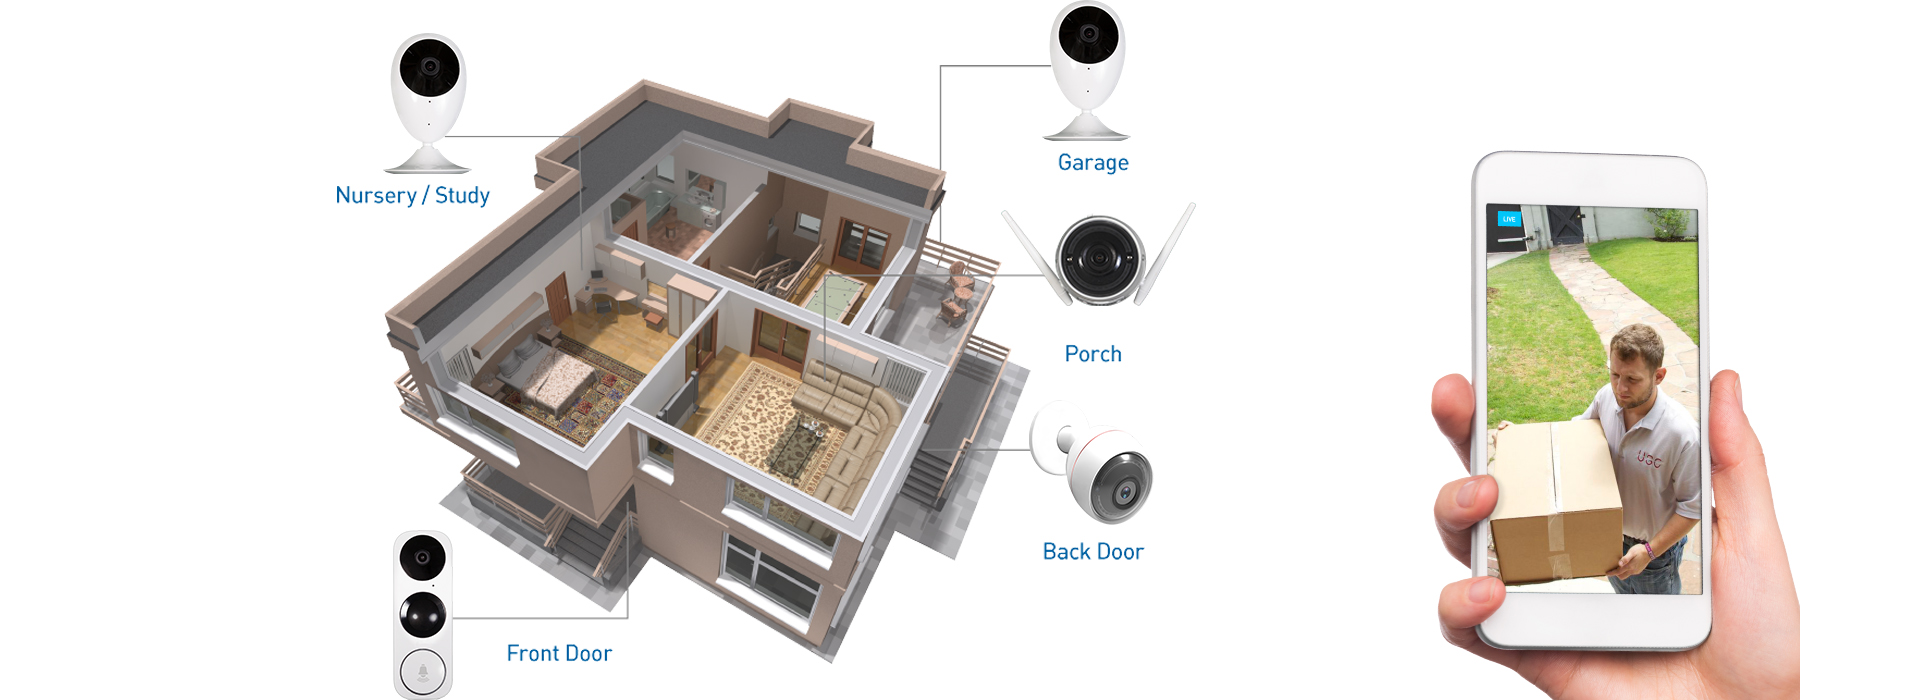 Tips For Placing Your Indoor Cameras